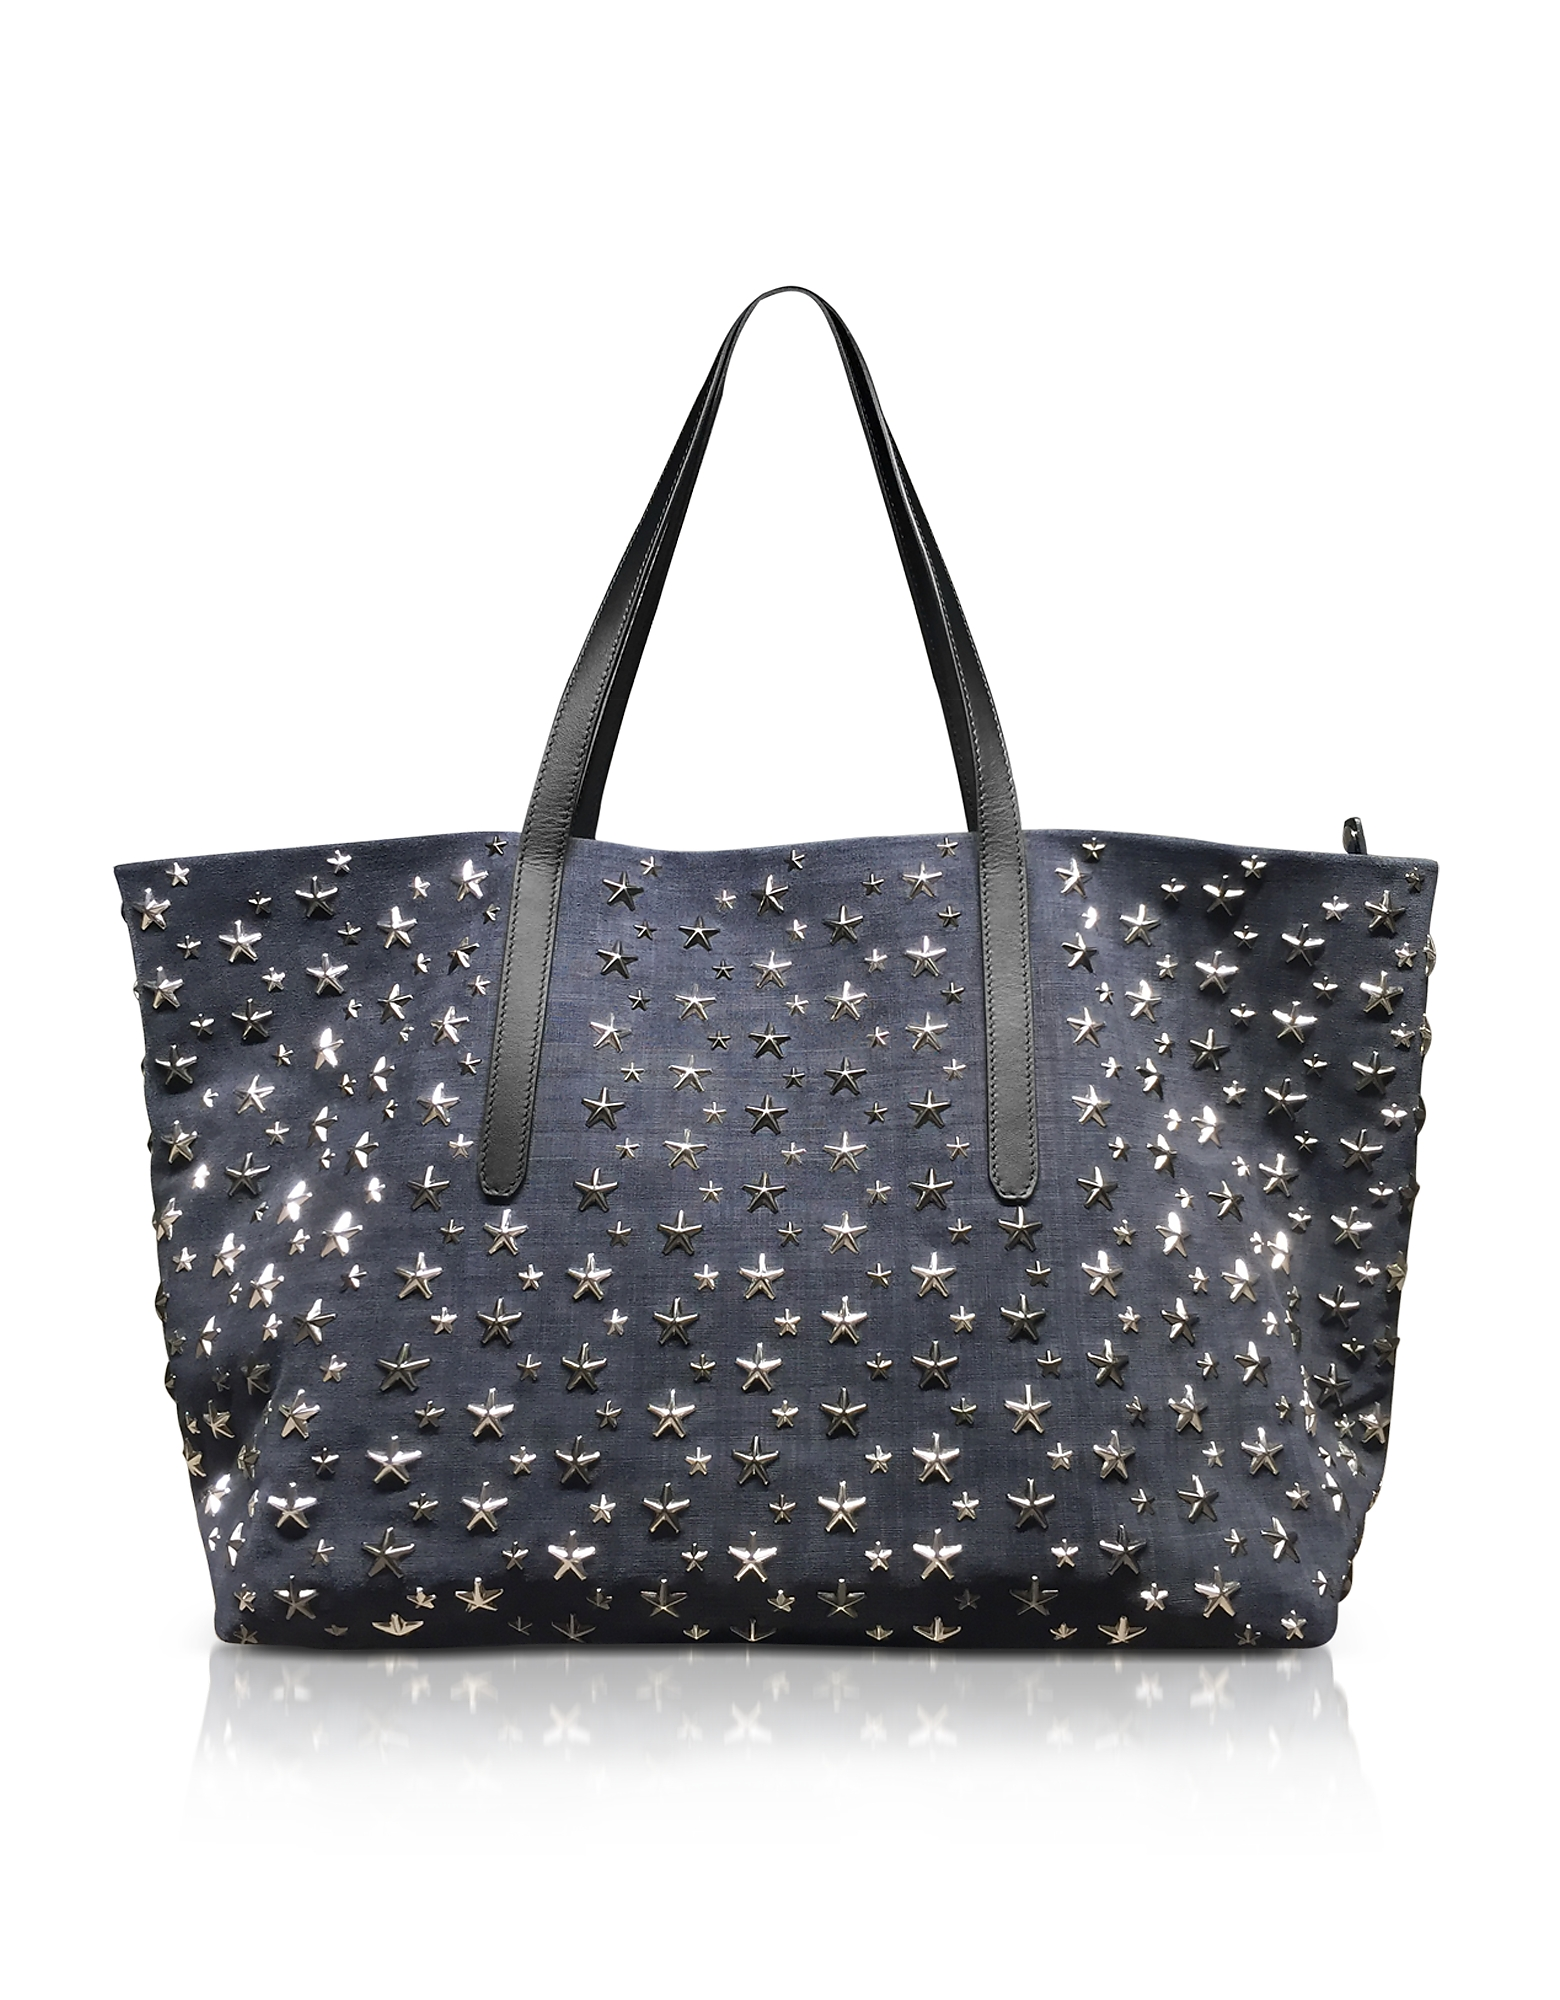 NAVY BLUE DENIM SUEDE LARGE TOTE from FORZIERI